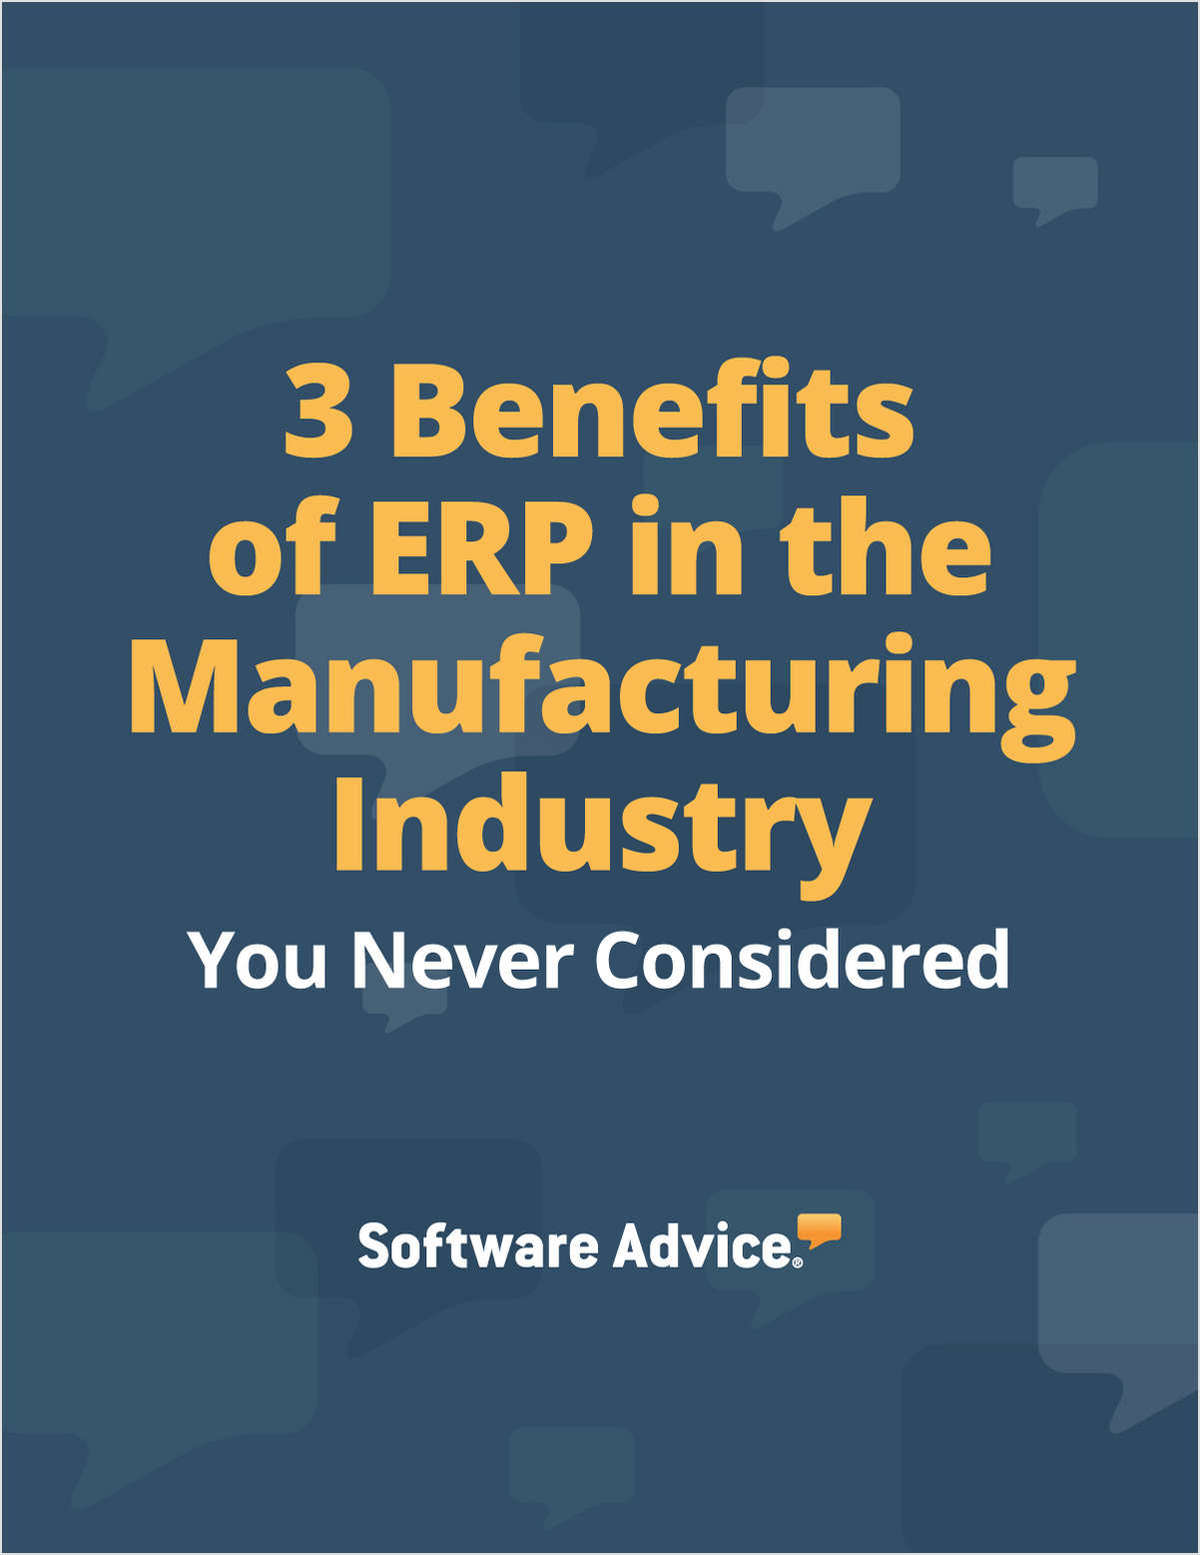 3 Benefits of ERP in the Manufacturing Industry You Never Considered